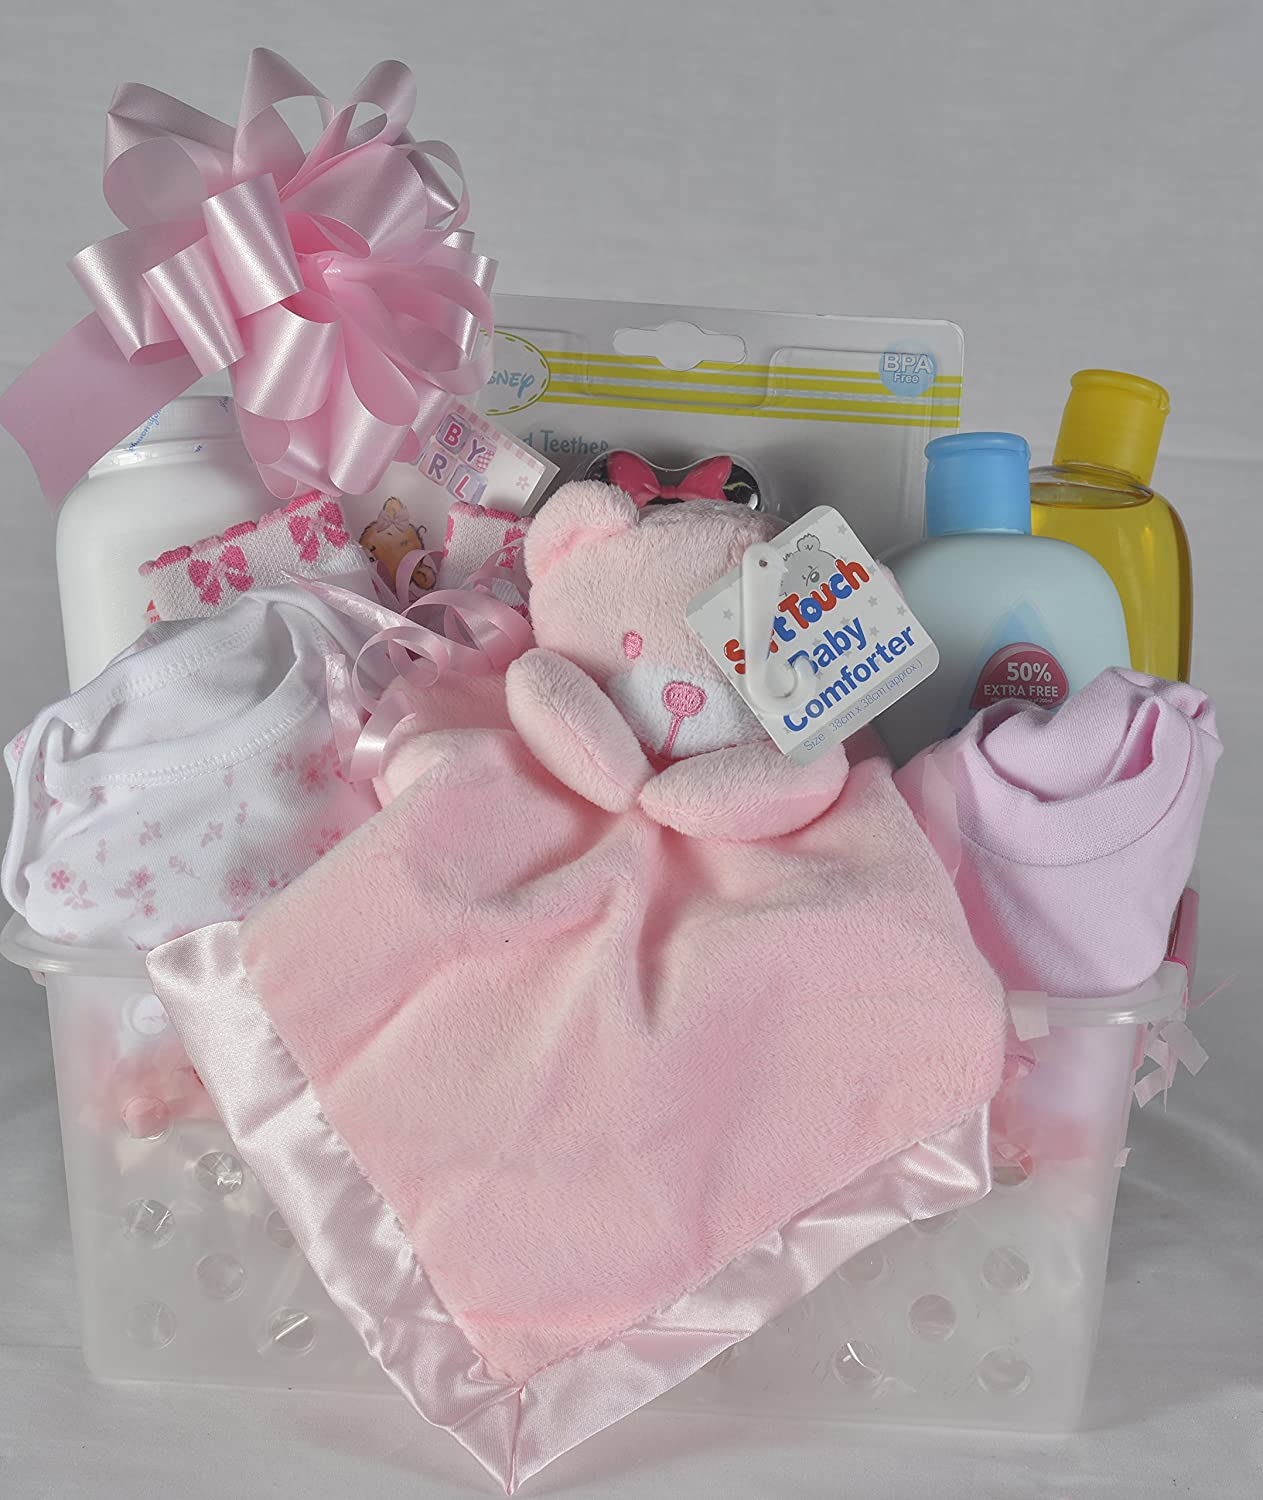 Newborn Baby Gift Hamper Baby Girl: Amazon.co.uk: Baby